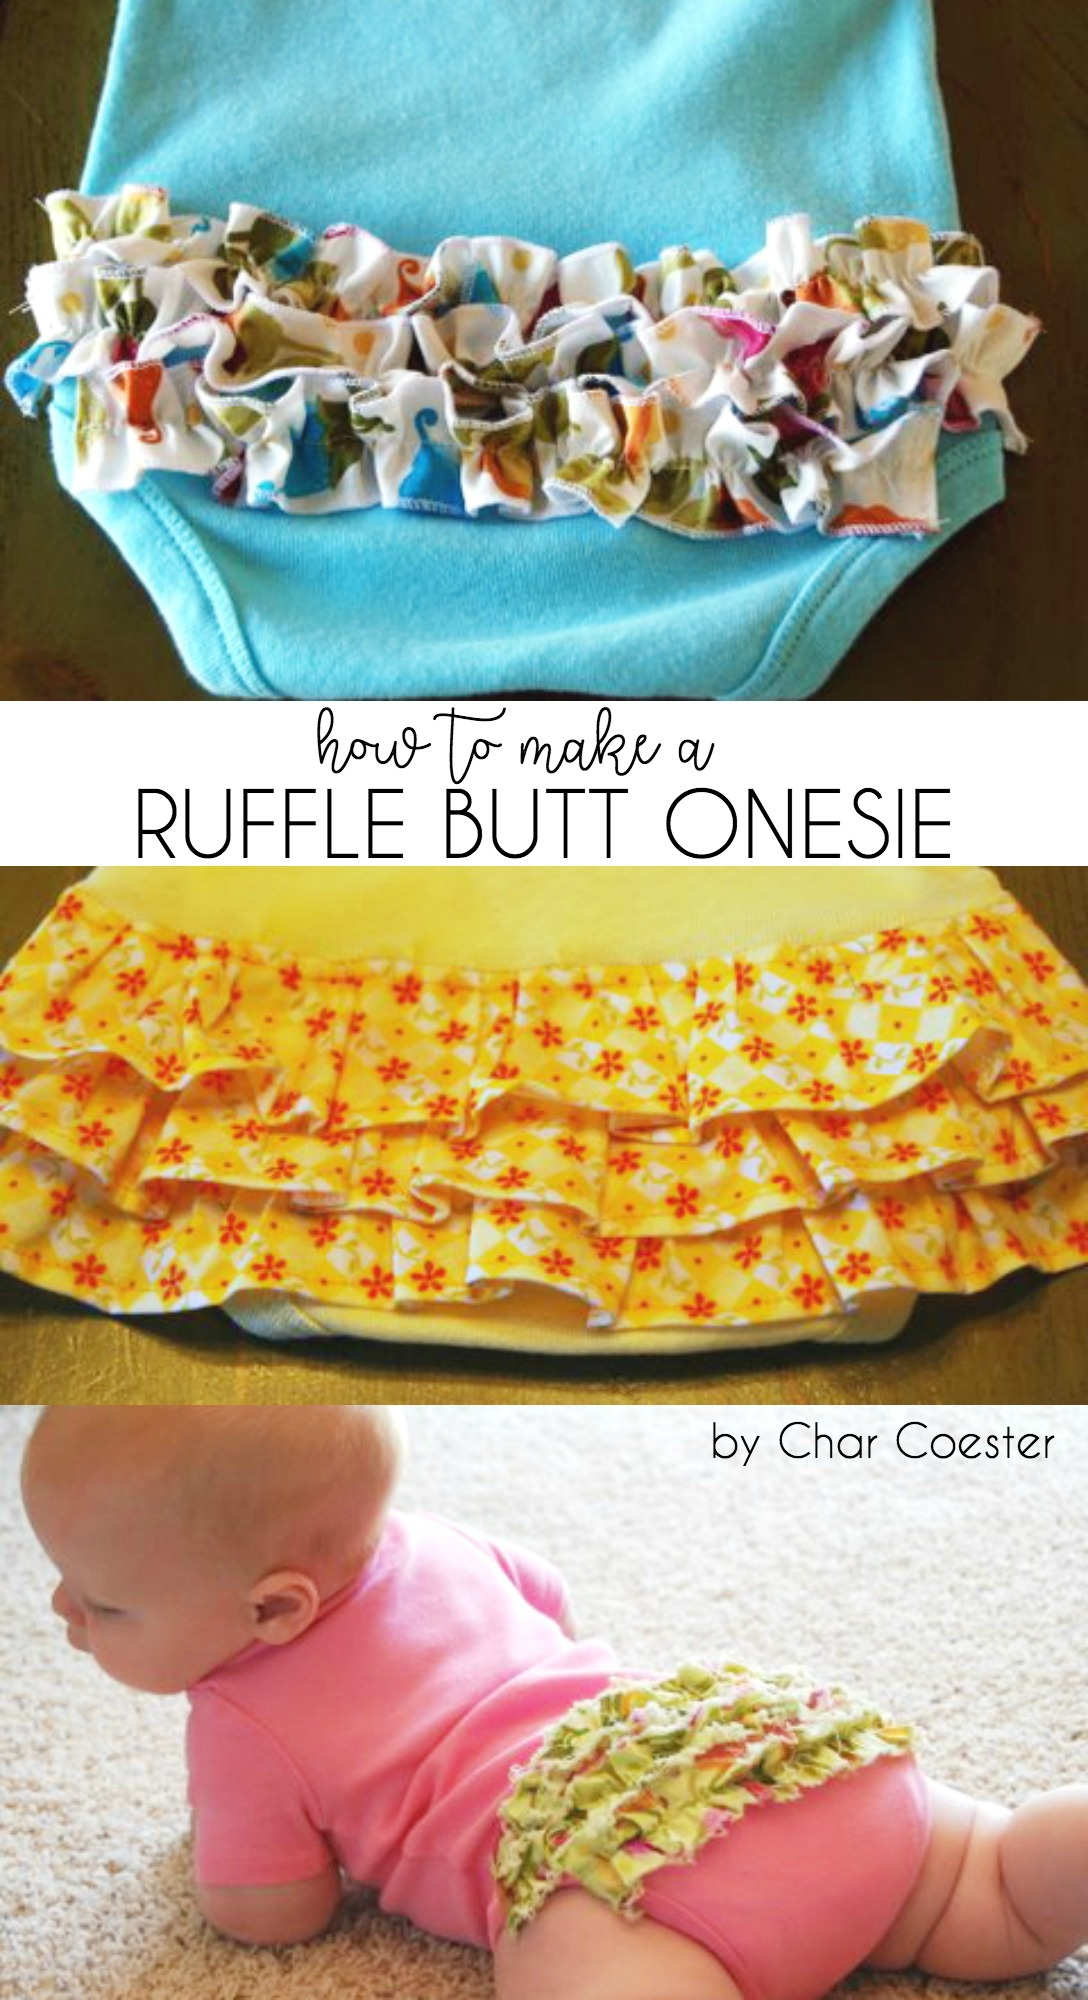 How to Make a Ruffle Butt Onesie by Char Coester